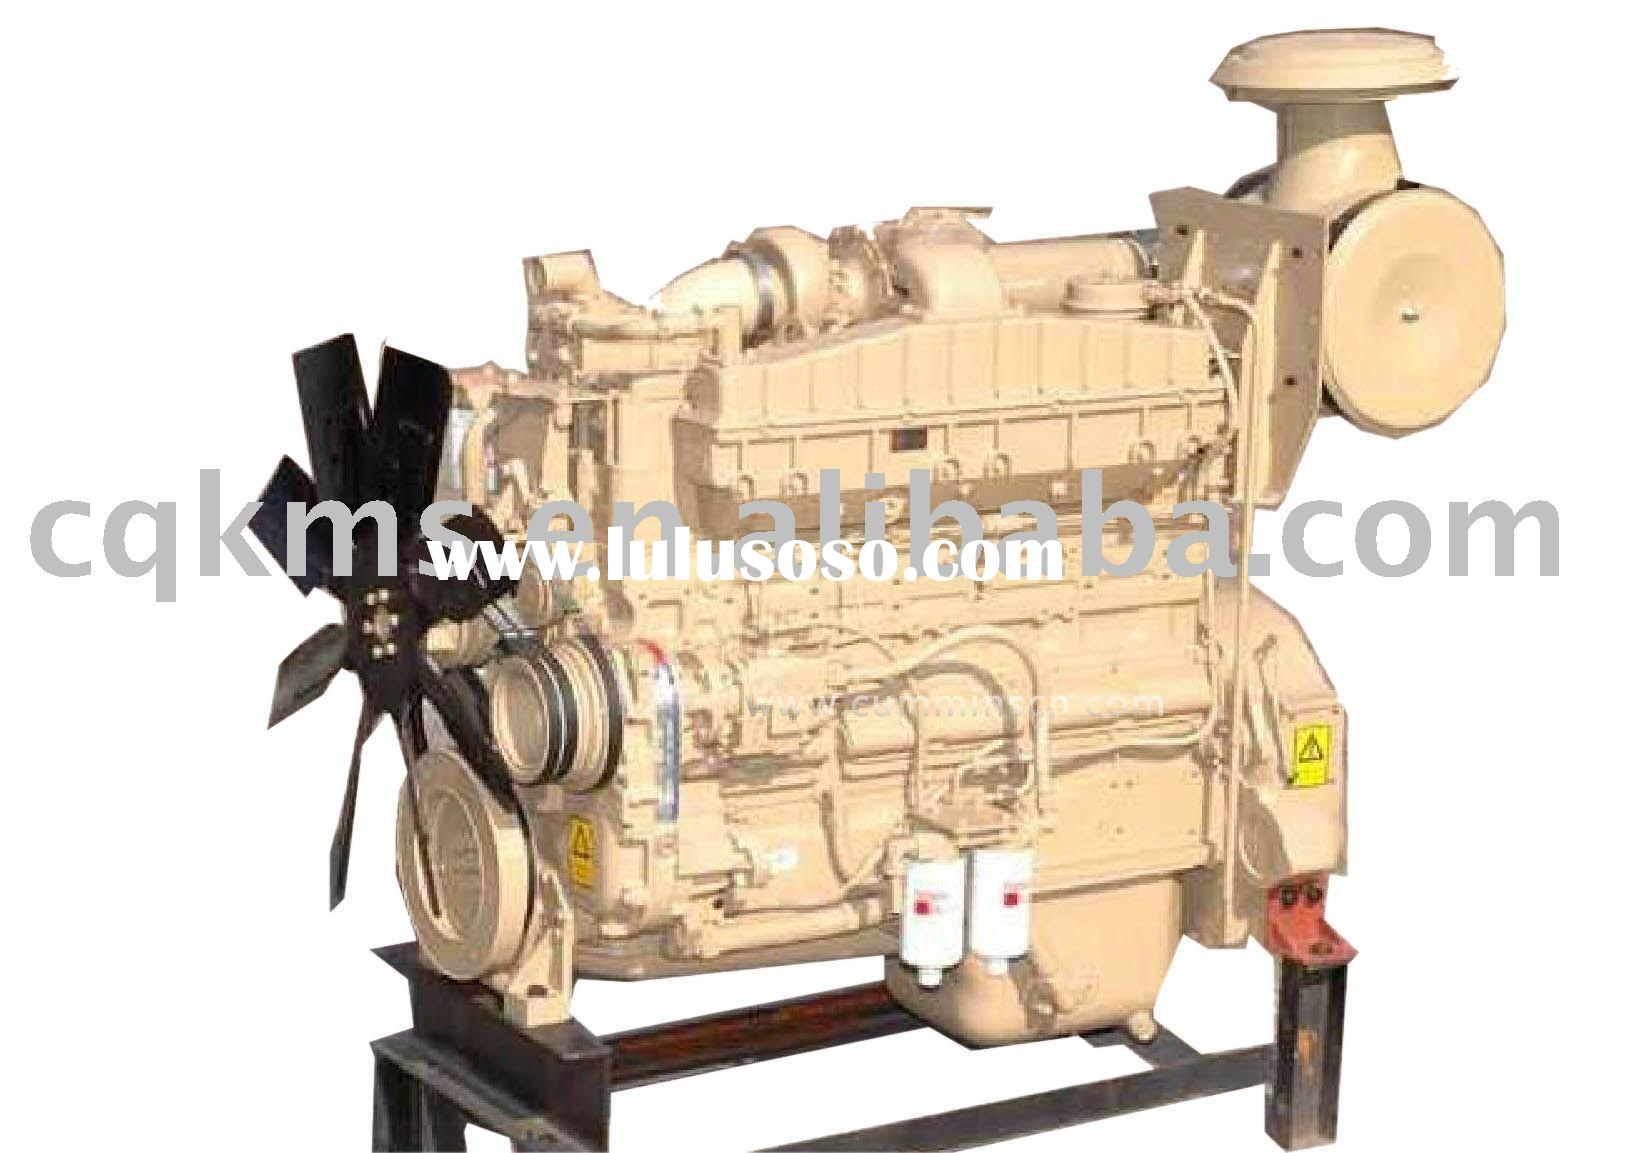 Car engines generator